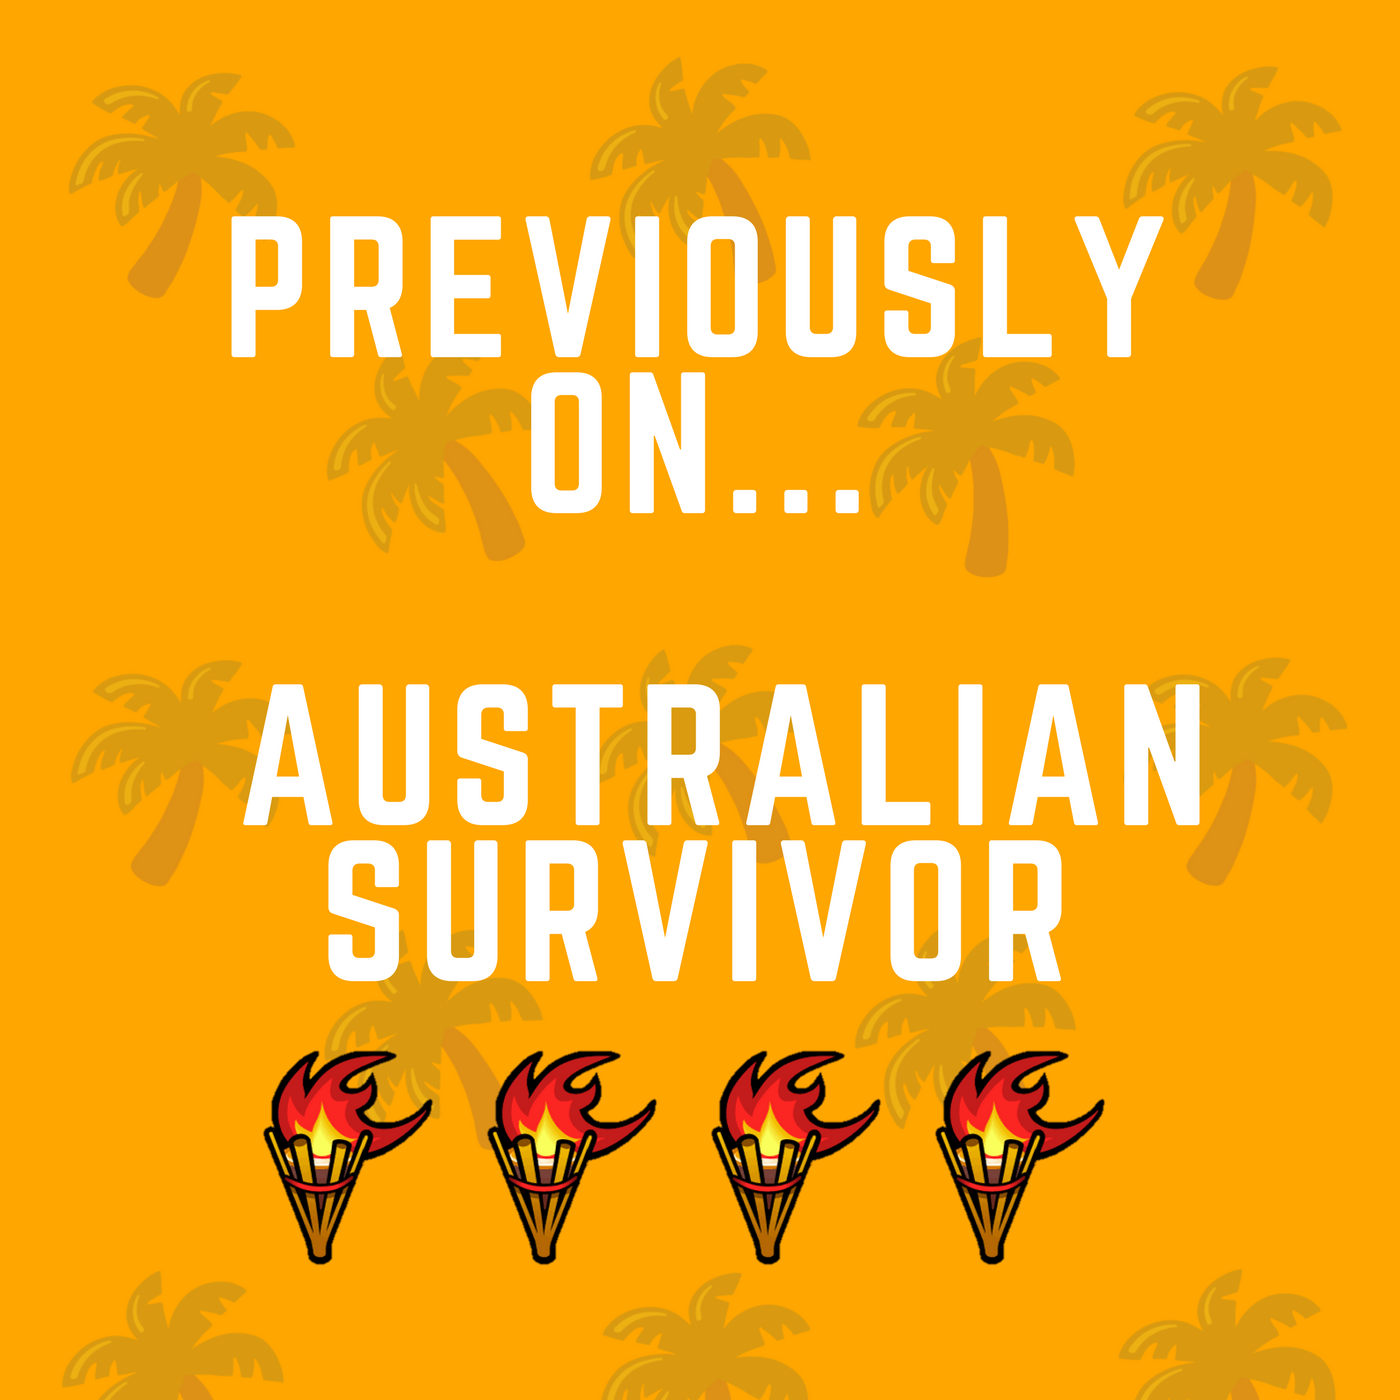 Previously on... Australian Survivor show image